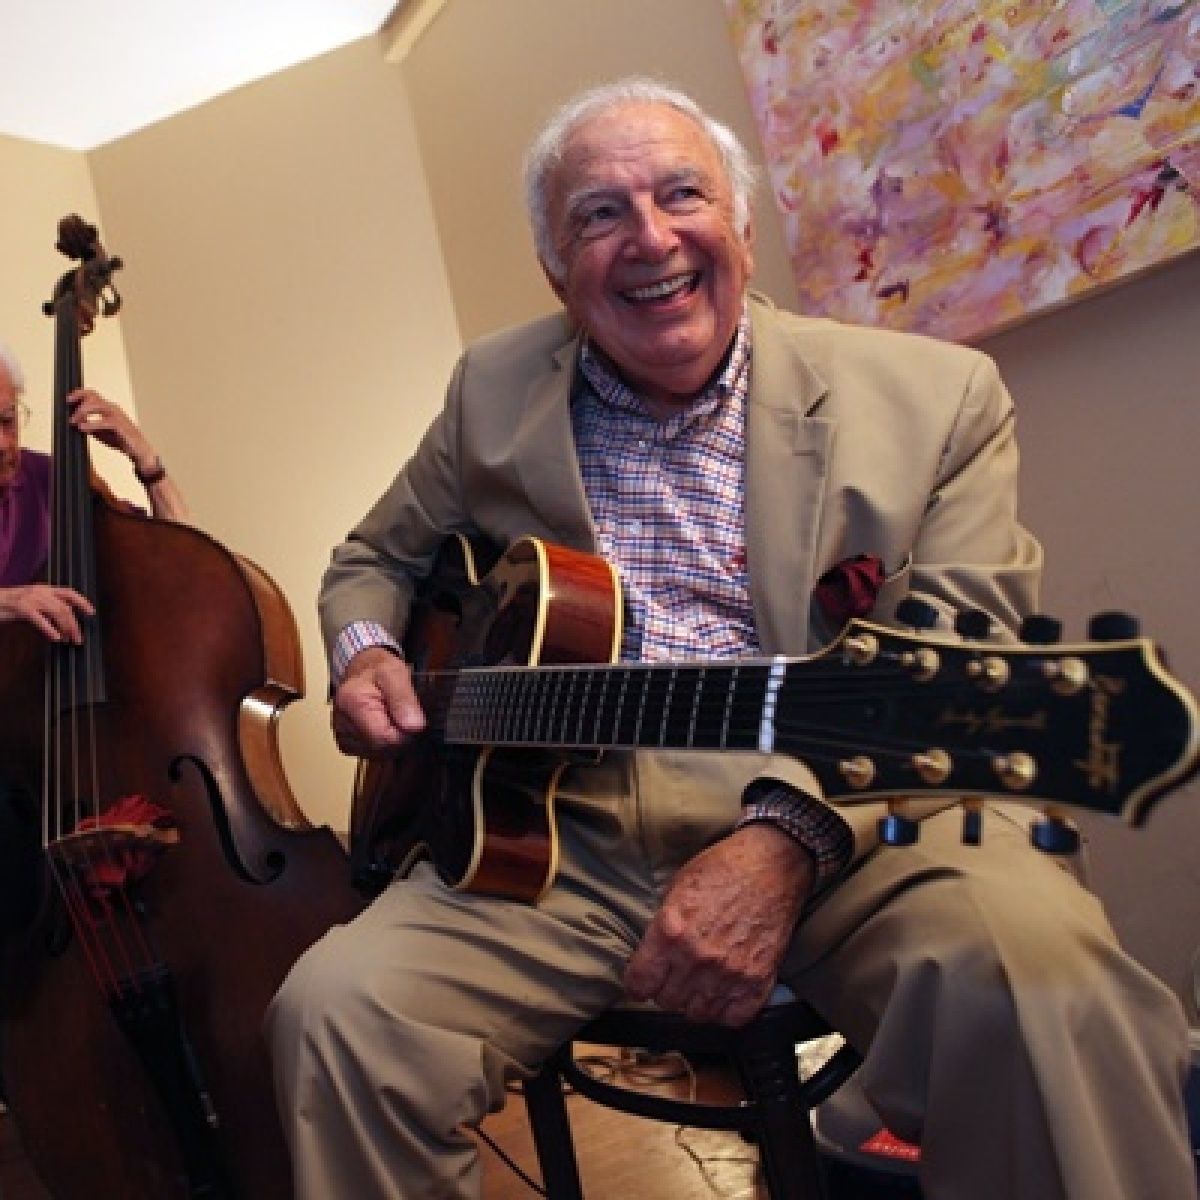 Jazz guitarist Bucky Pizzarelli dies at 94 due to coronavirus